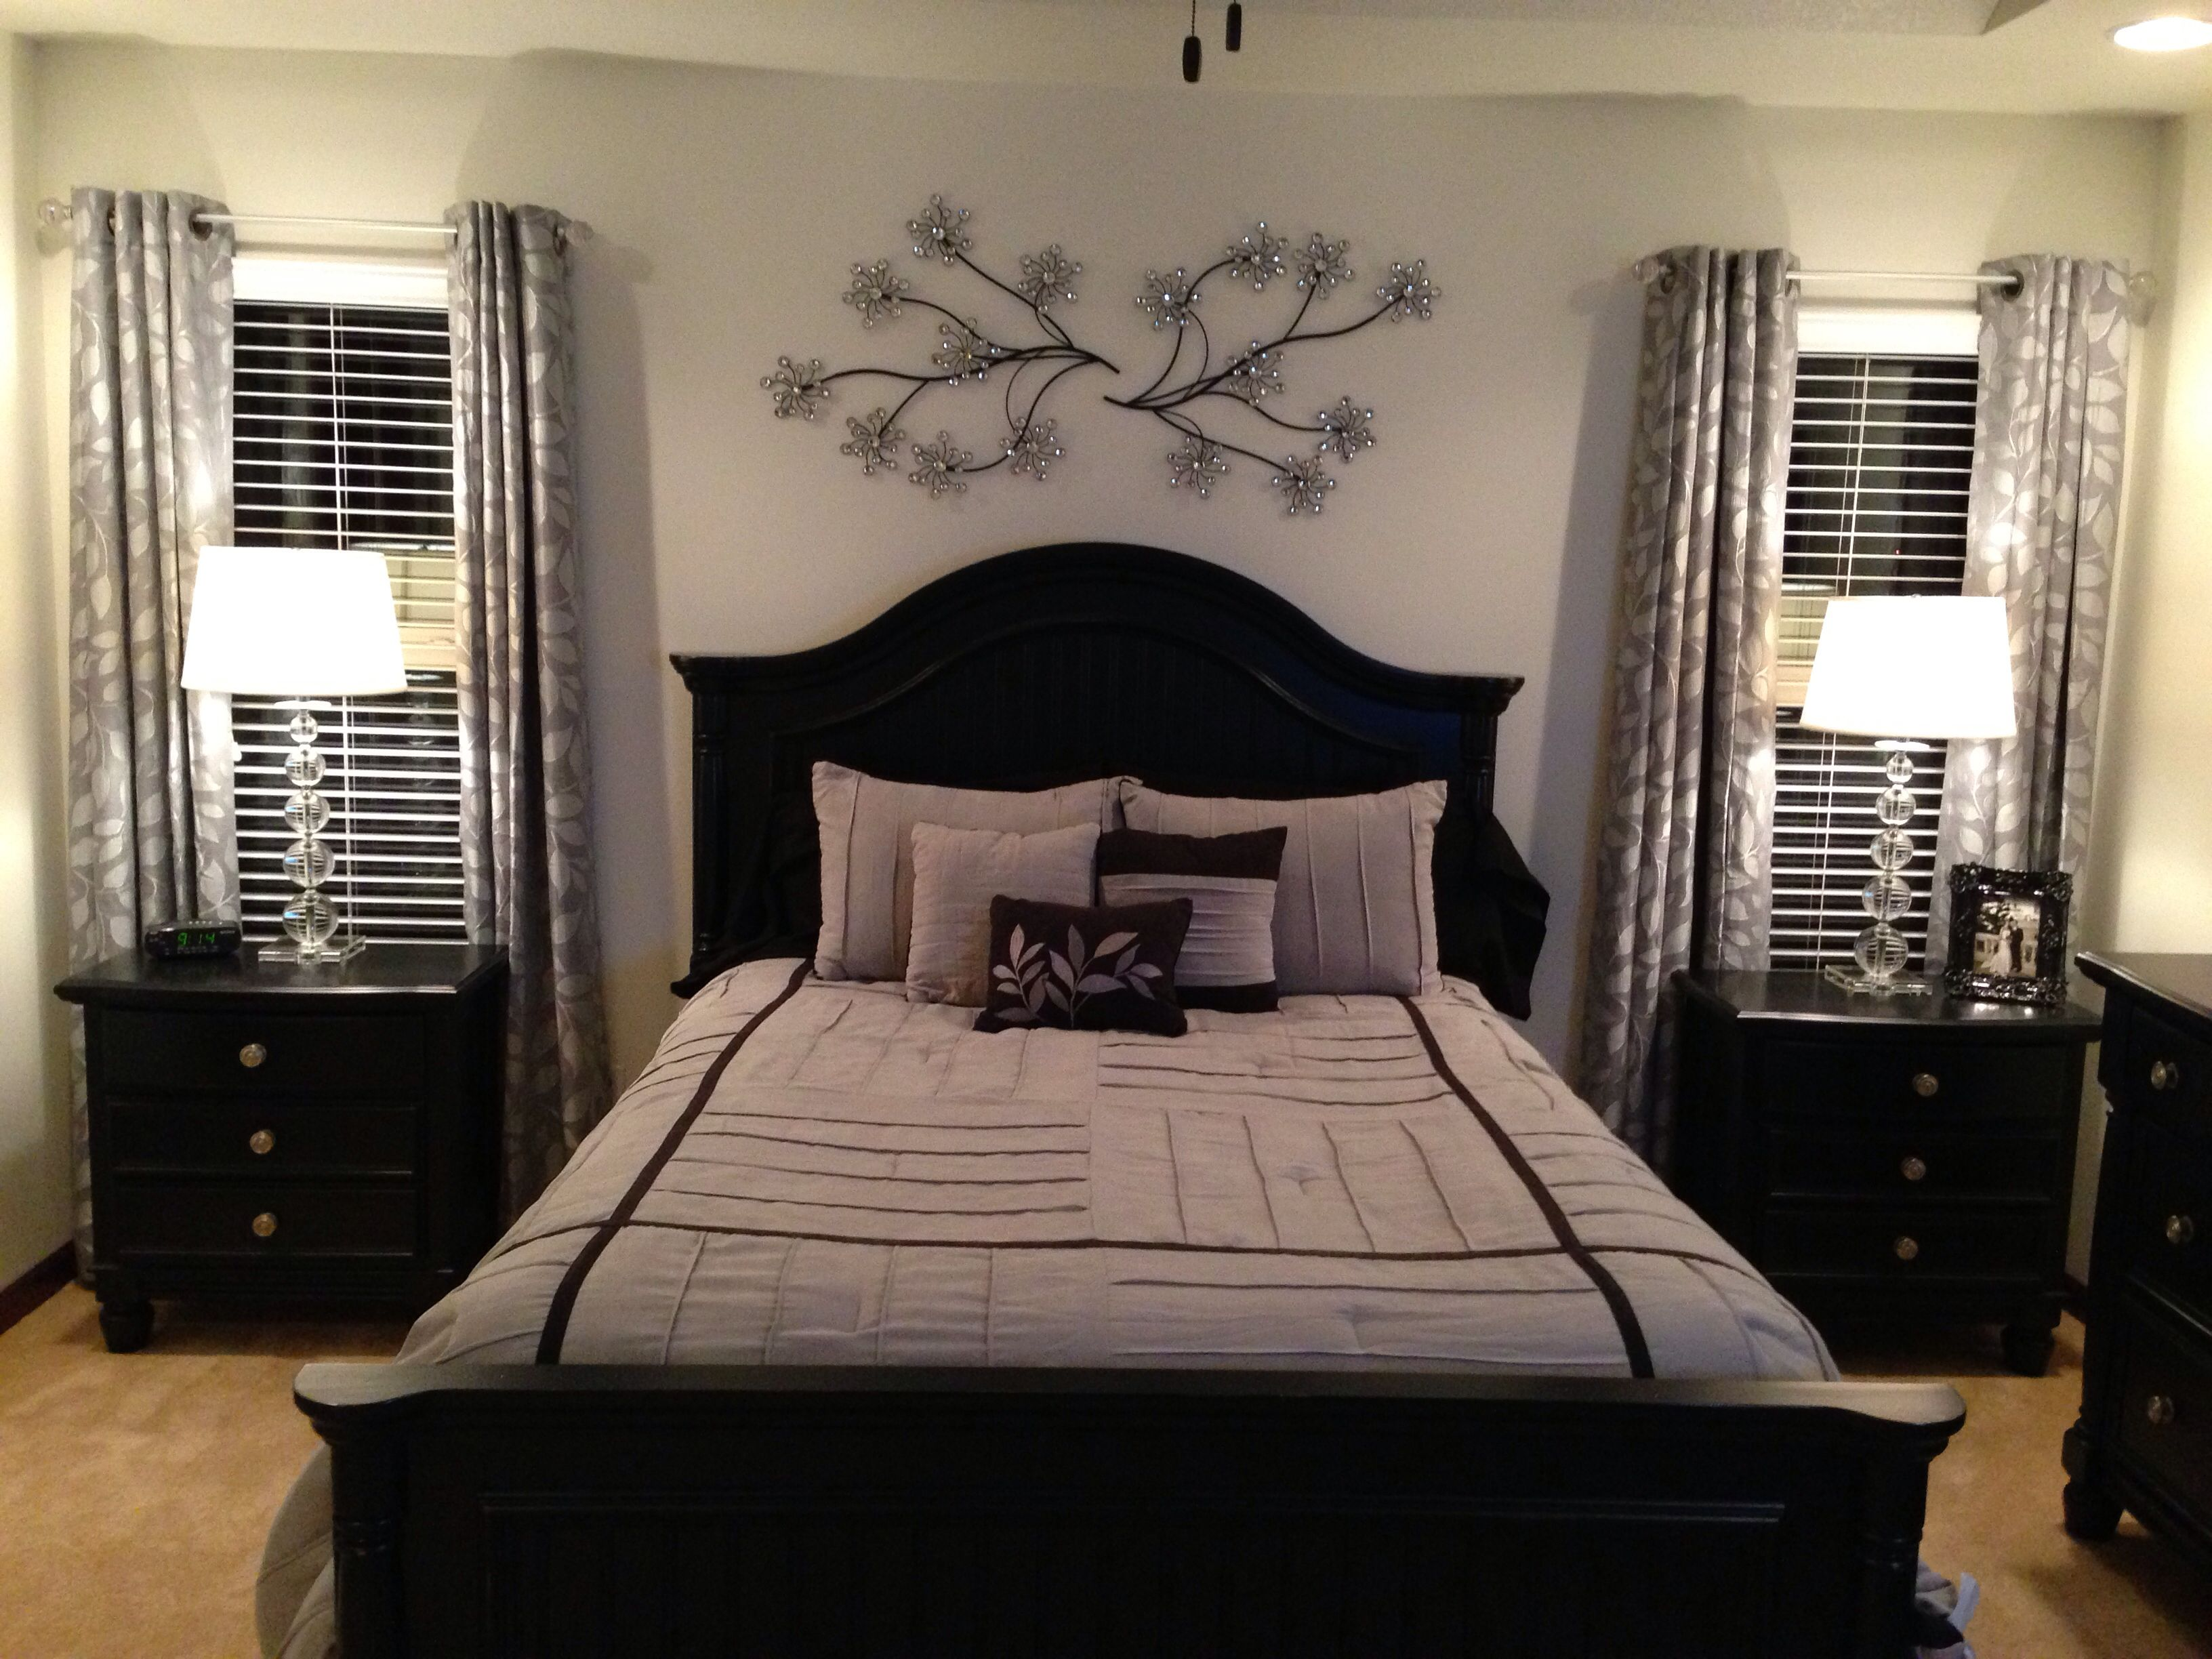 Kohls Bedroom Furniture Burks Master Bedroom Furniture And Curtains From Jcpenney Lamps